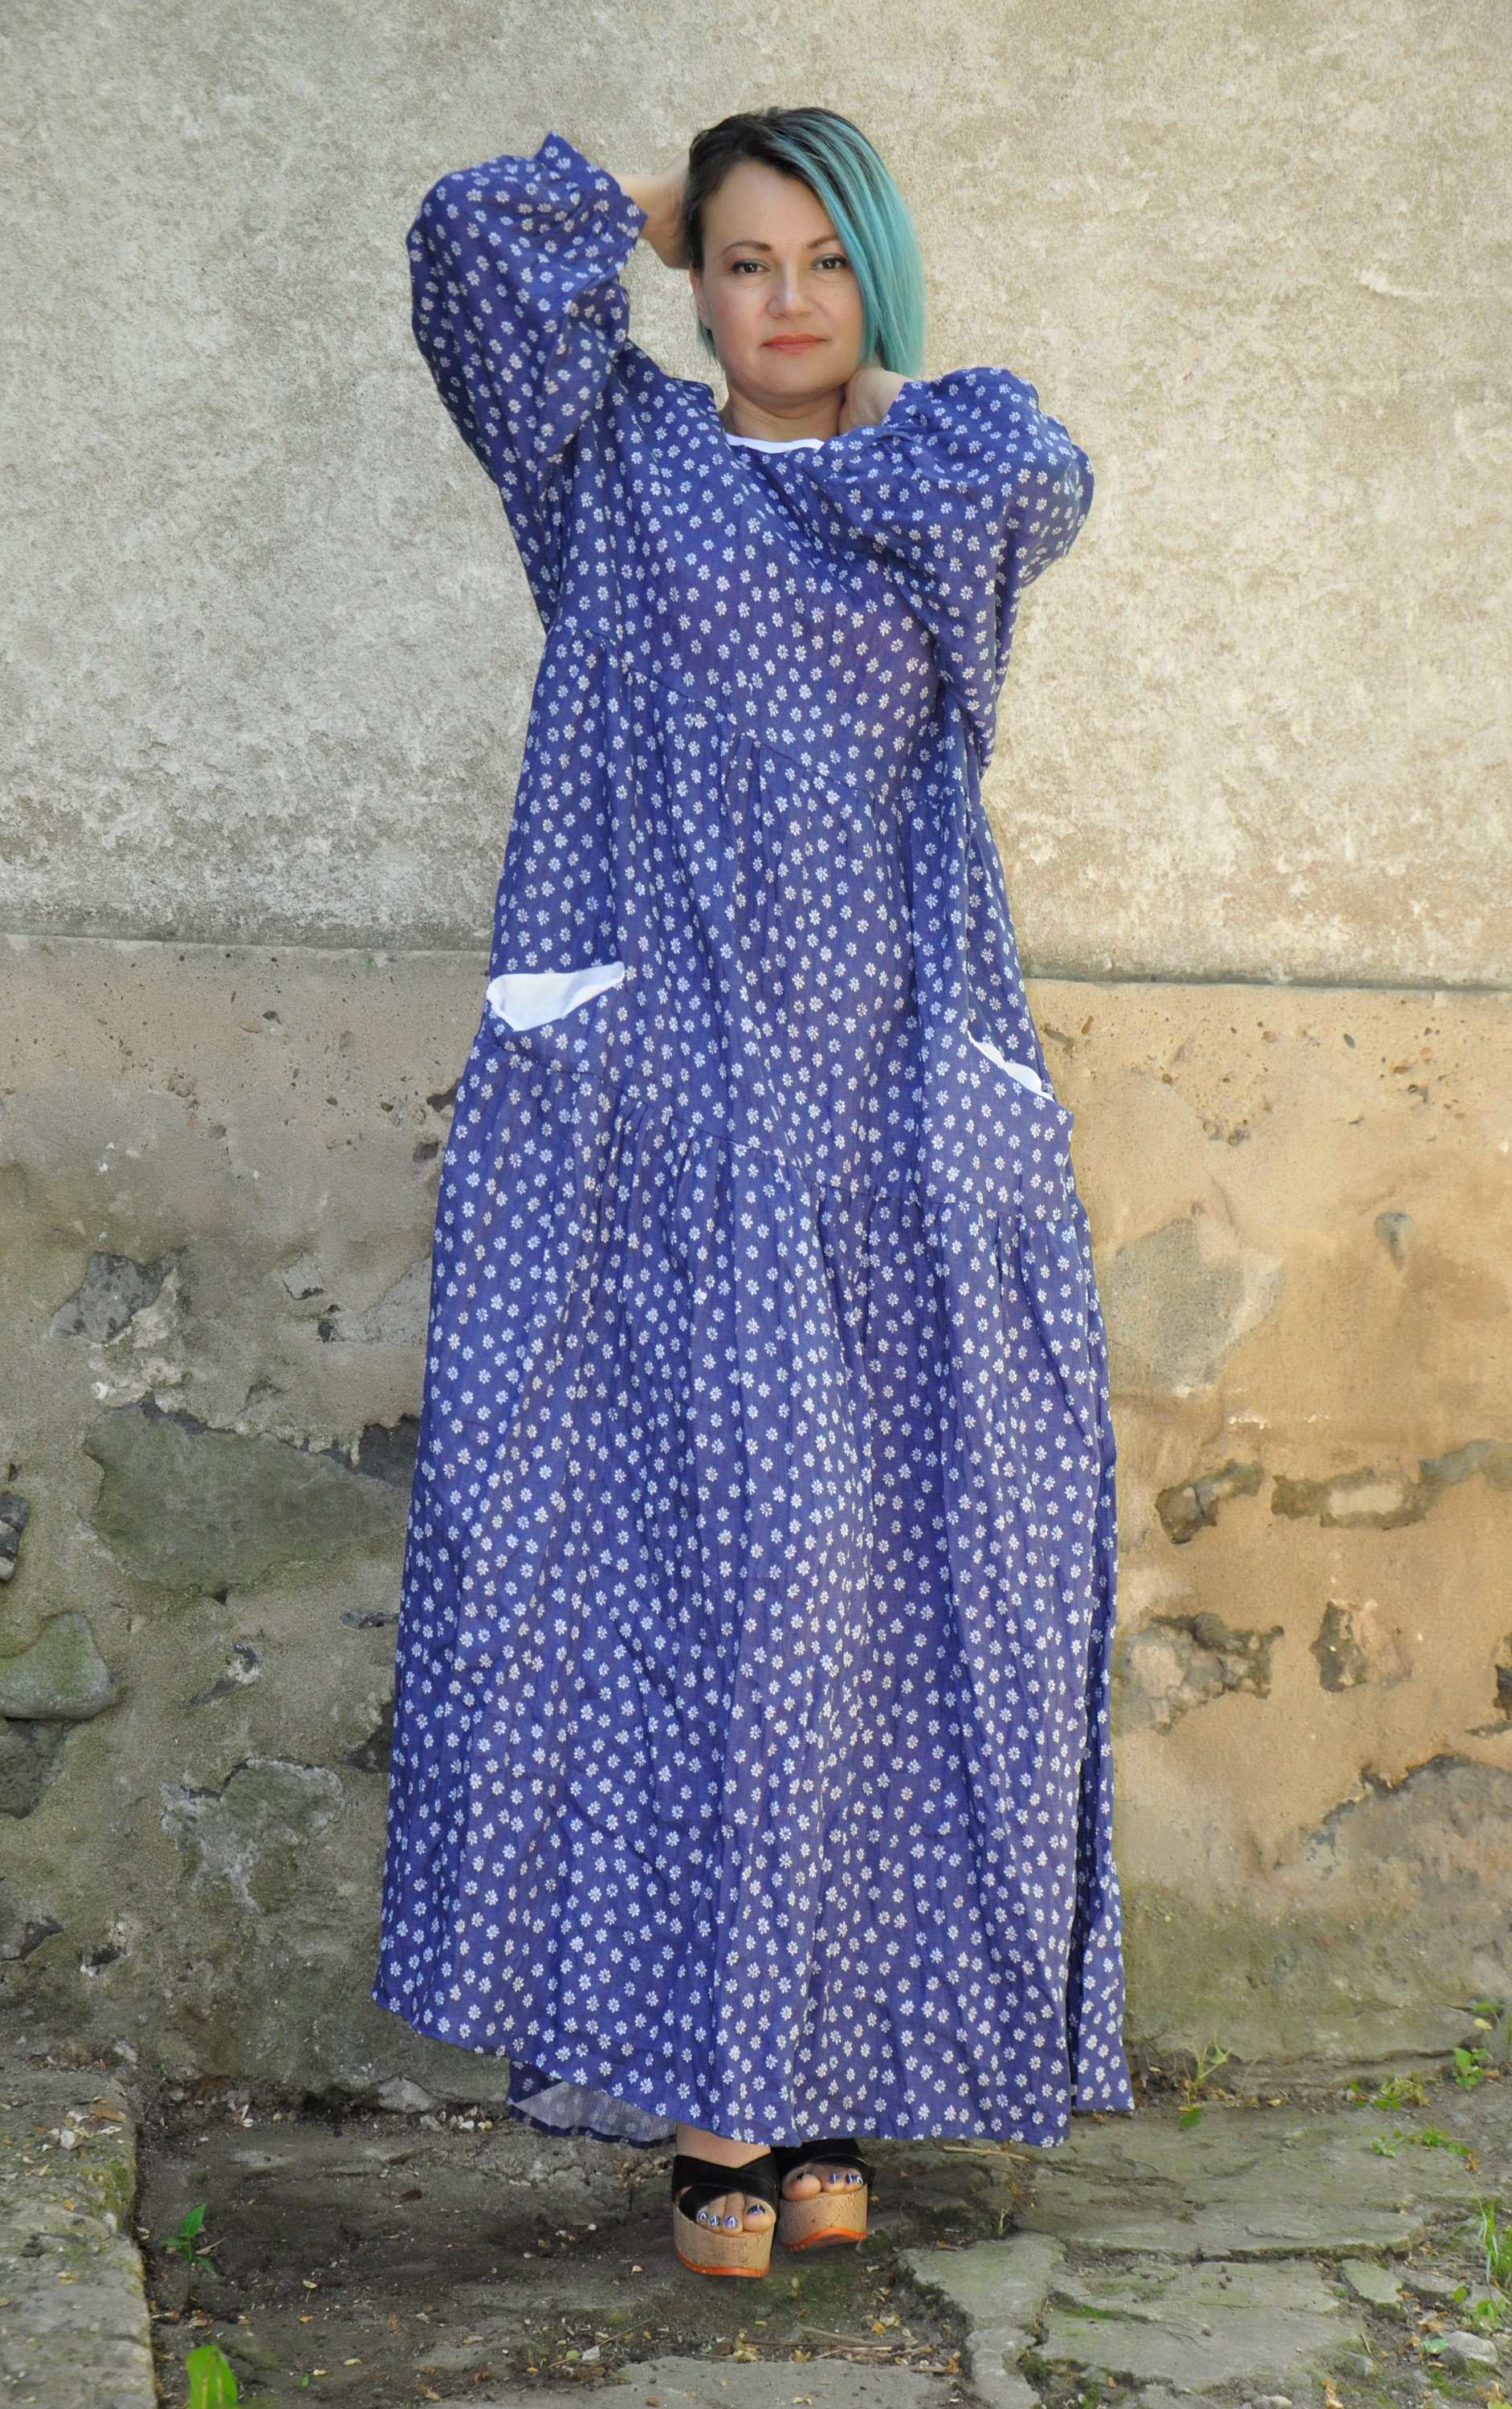 80s Dresses | Casual to Party Dresses Plus Size Linen Dress, Polka Dot Abaya Clothing, Maxi Summer 1980S Loose $119.00 AT vintagedancer.com